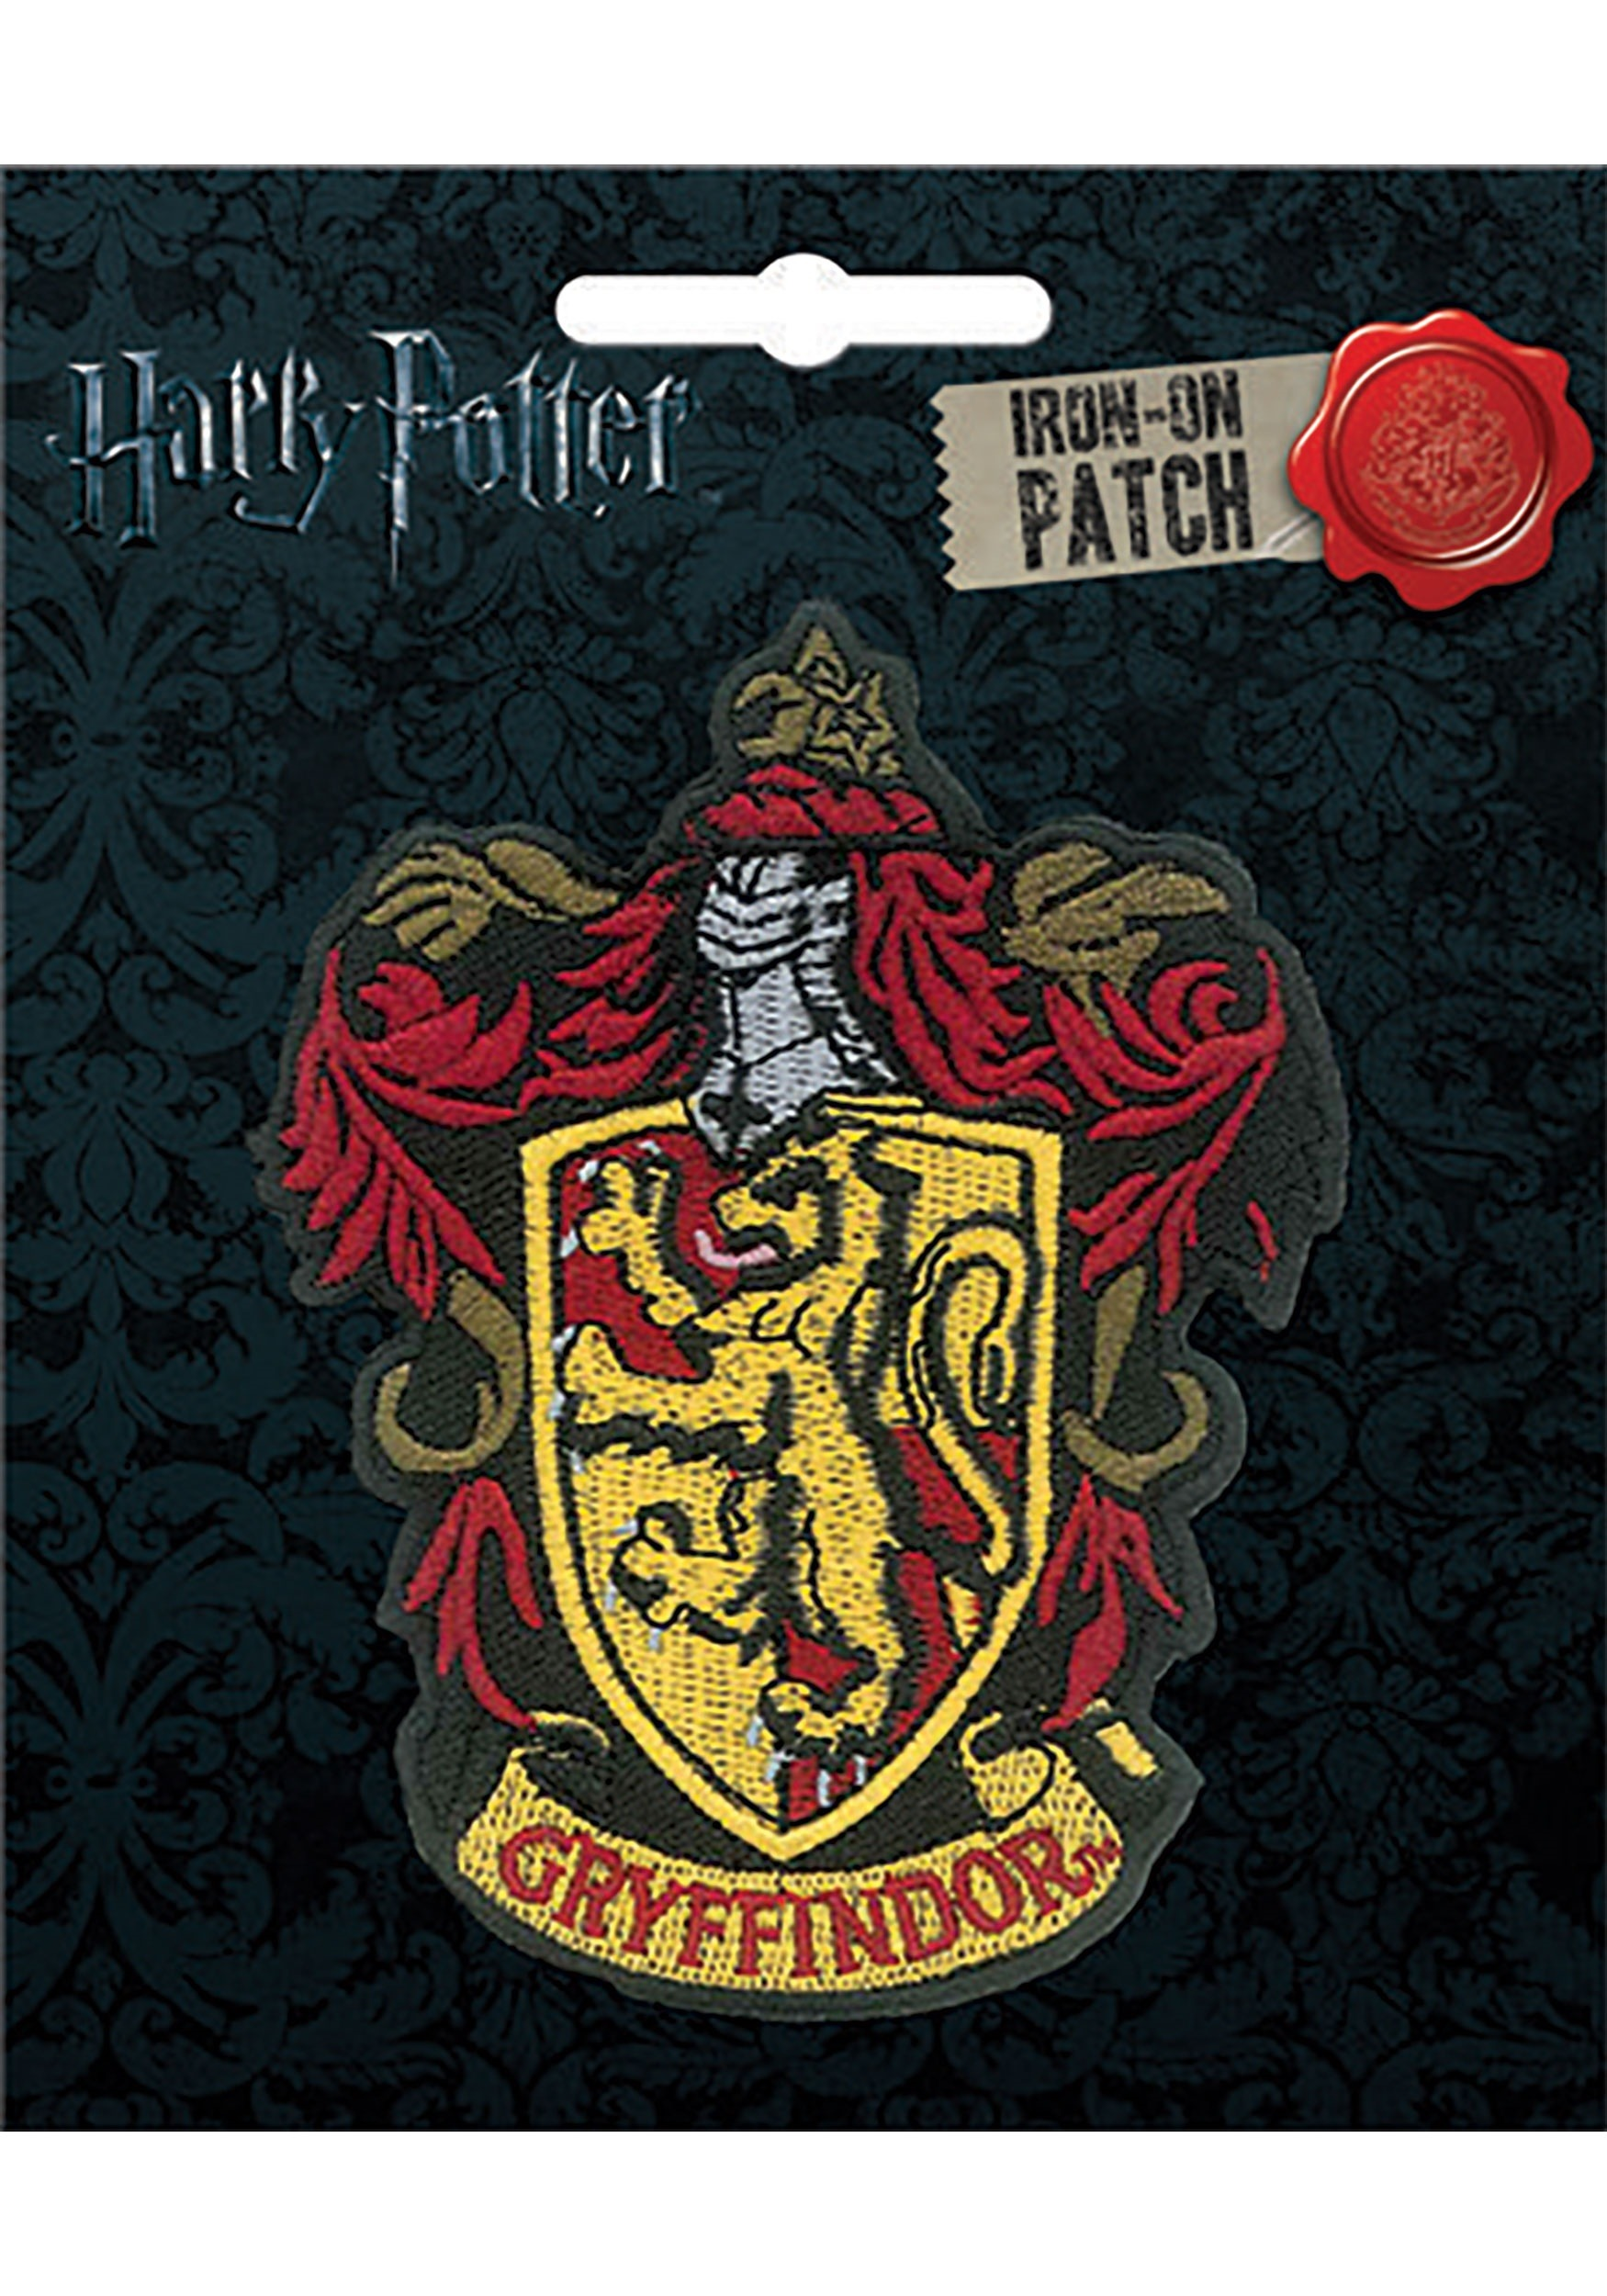 Harry Potter Gryffindor Iron-On Patch